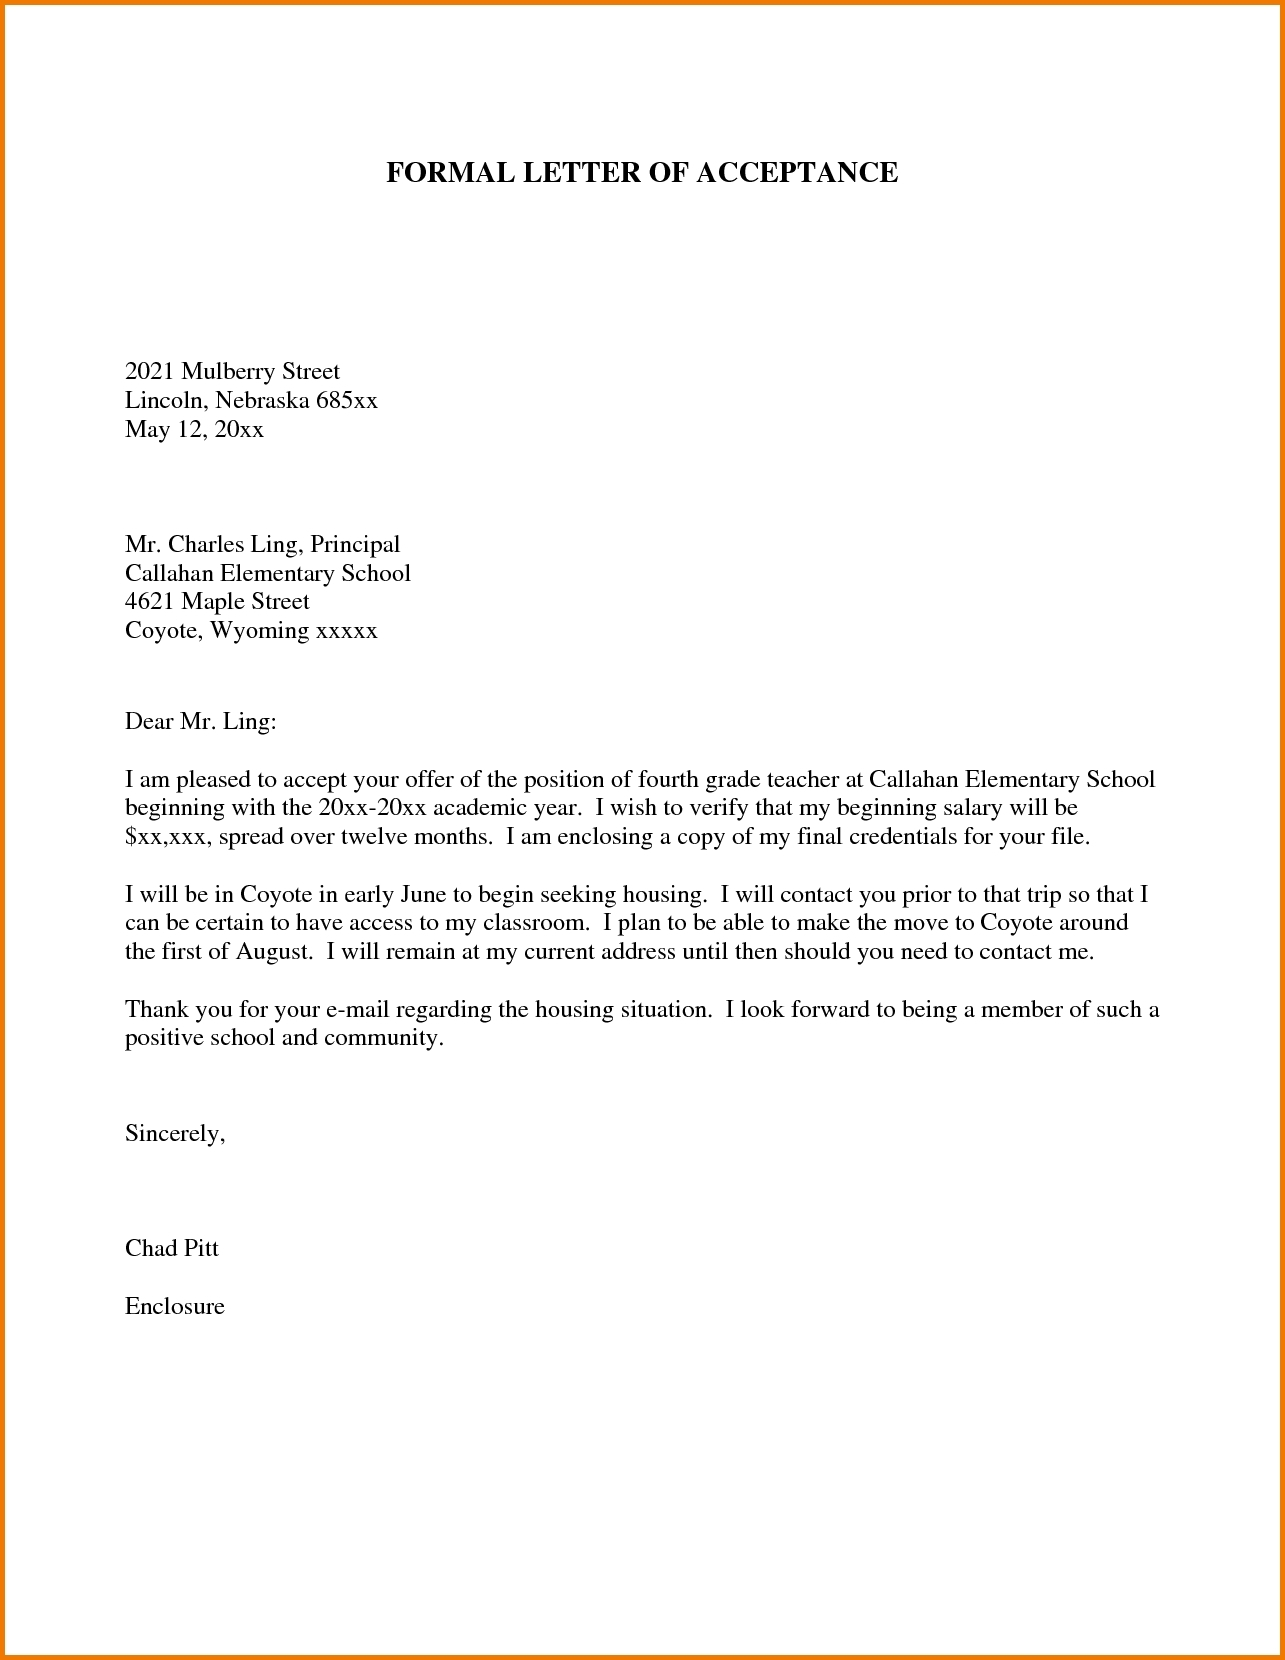 Formal Letter Format For School Students | Examples And Forms with Formal Letter Format For School 21731